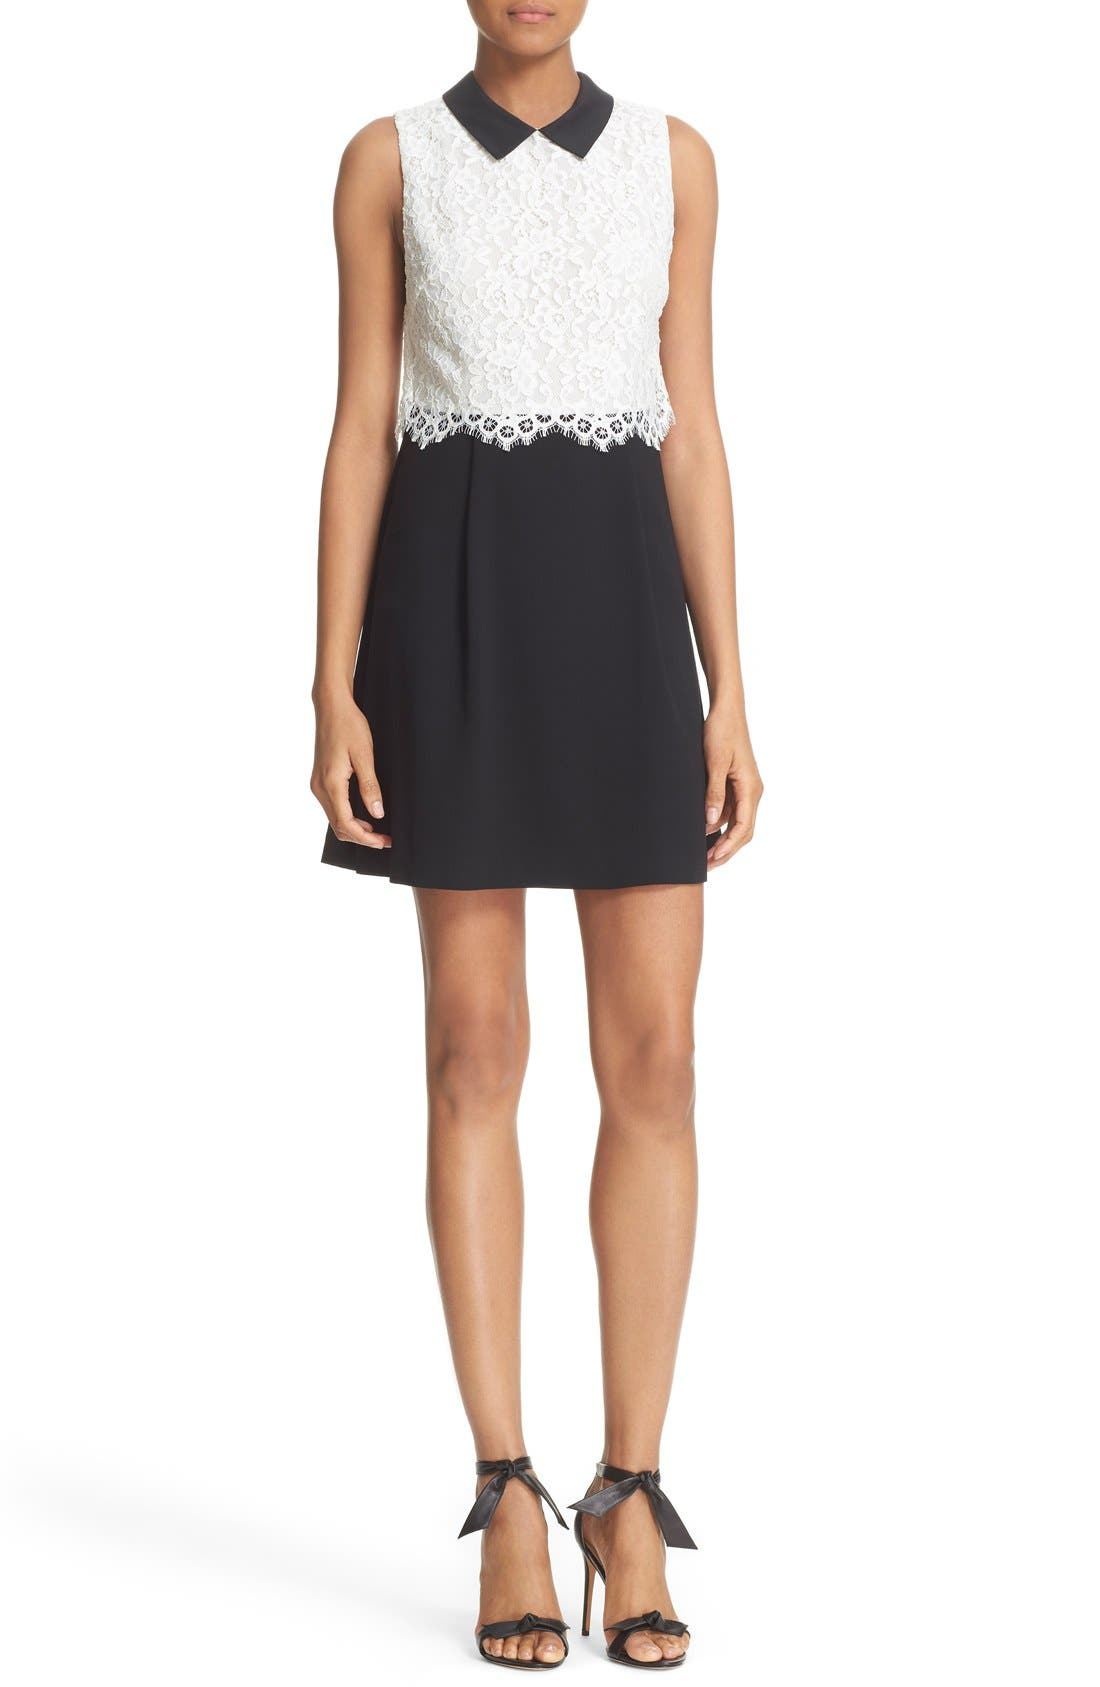 Alternate Image 1 Selected - Alice + Olivia 'Desra' Two-Tone Lace Bodice Minidress